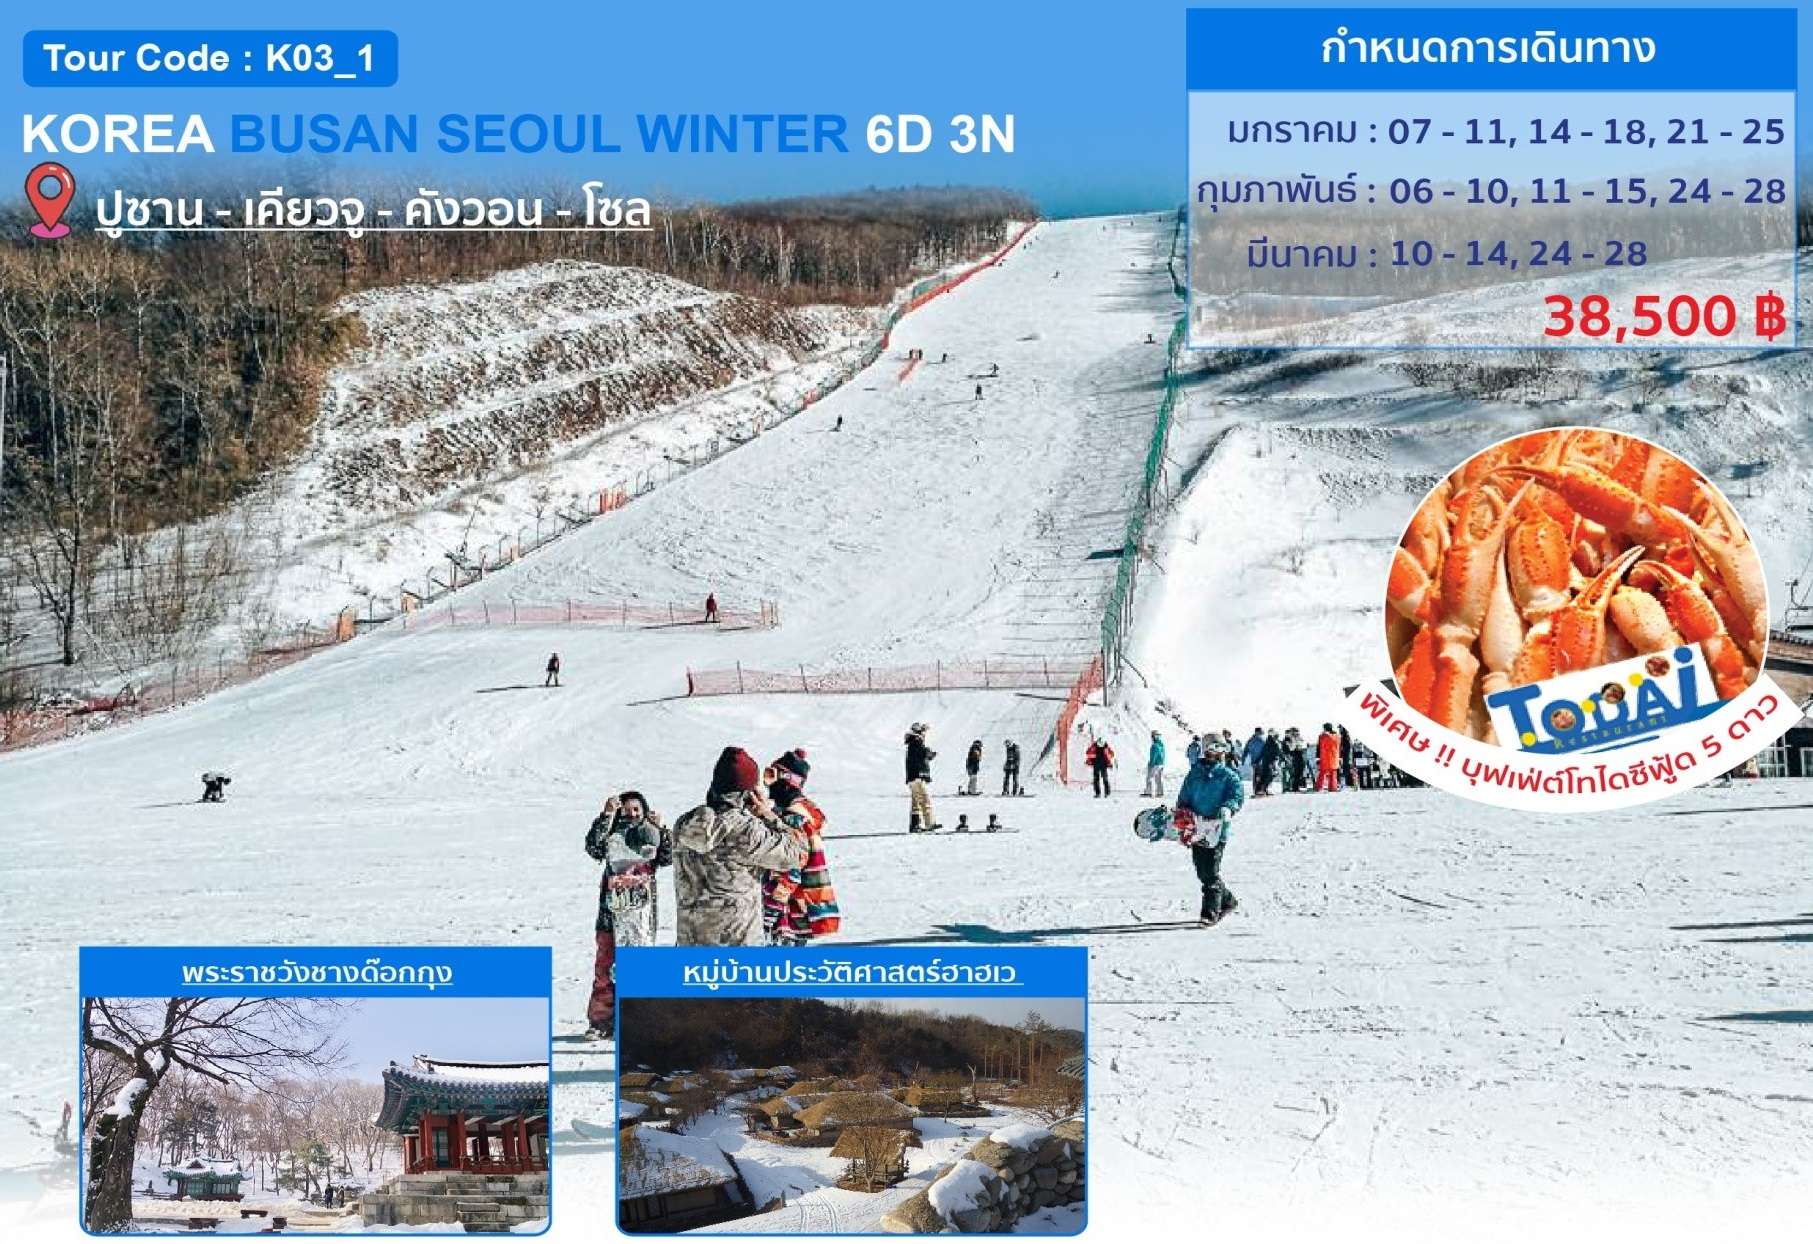 ทัวร์เกาหลี-KOREA-BUSAN-SEOUL-WINTER-5D-3N-(MAR20)-(K03_1)